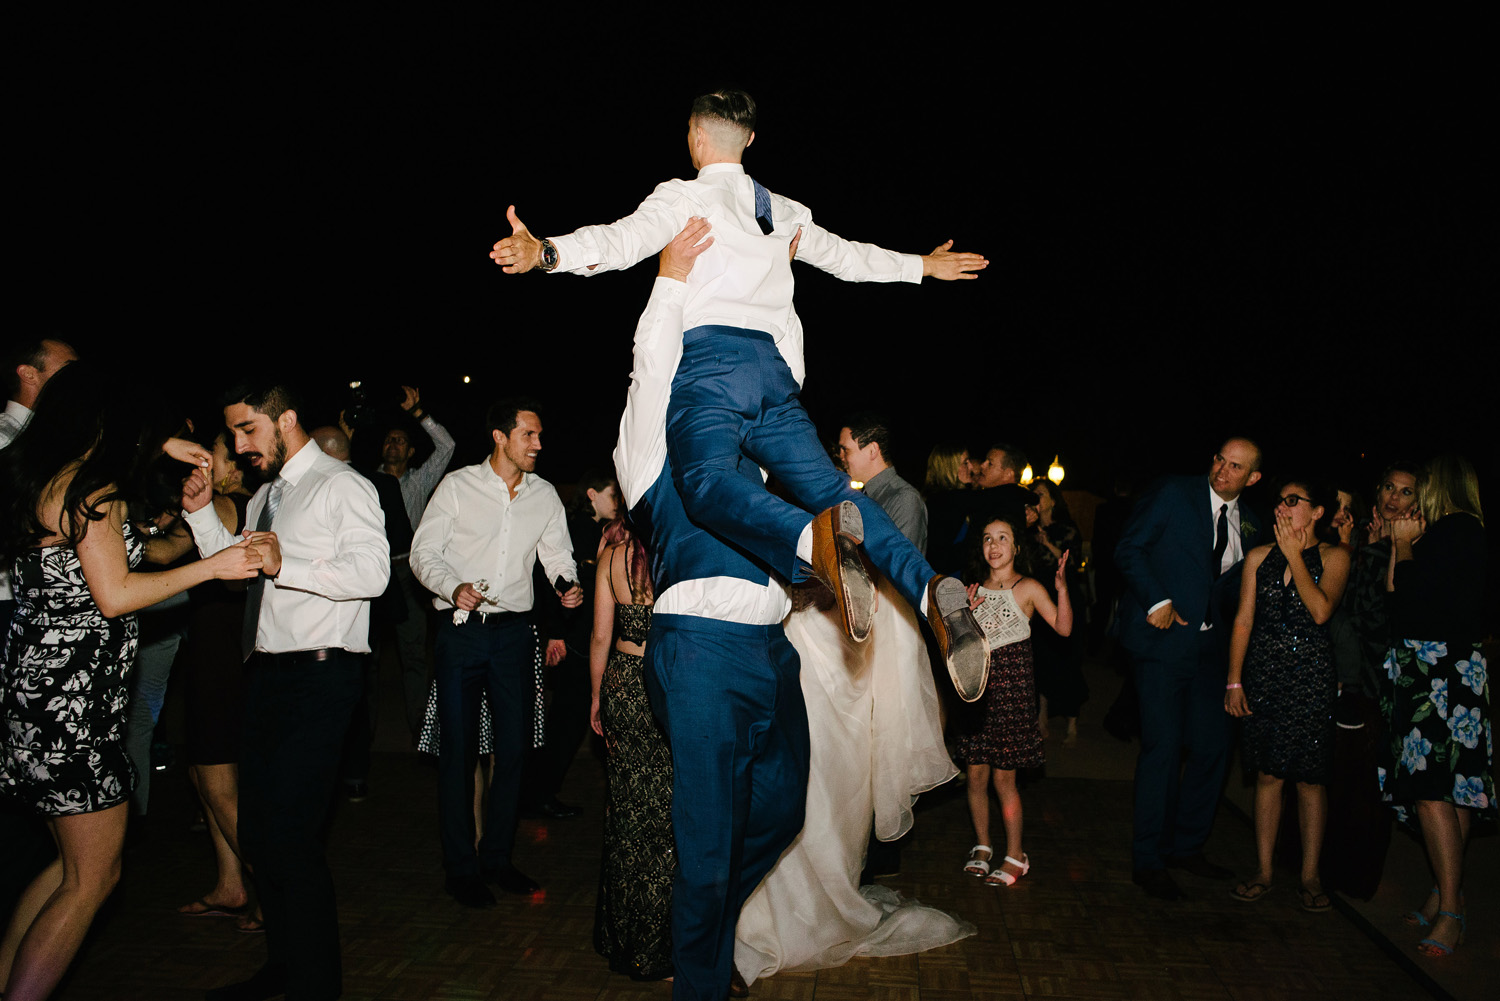 groom lifts groomsman dancing